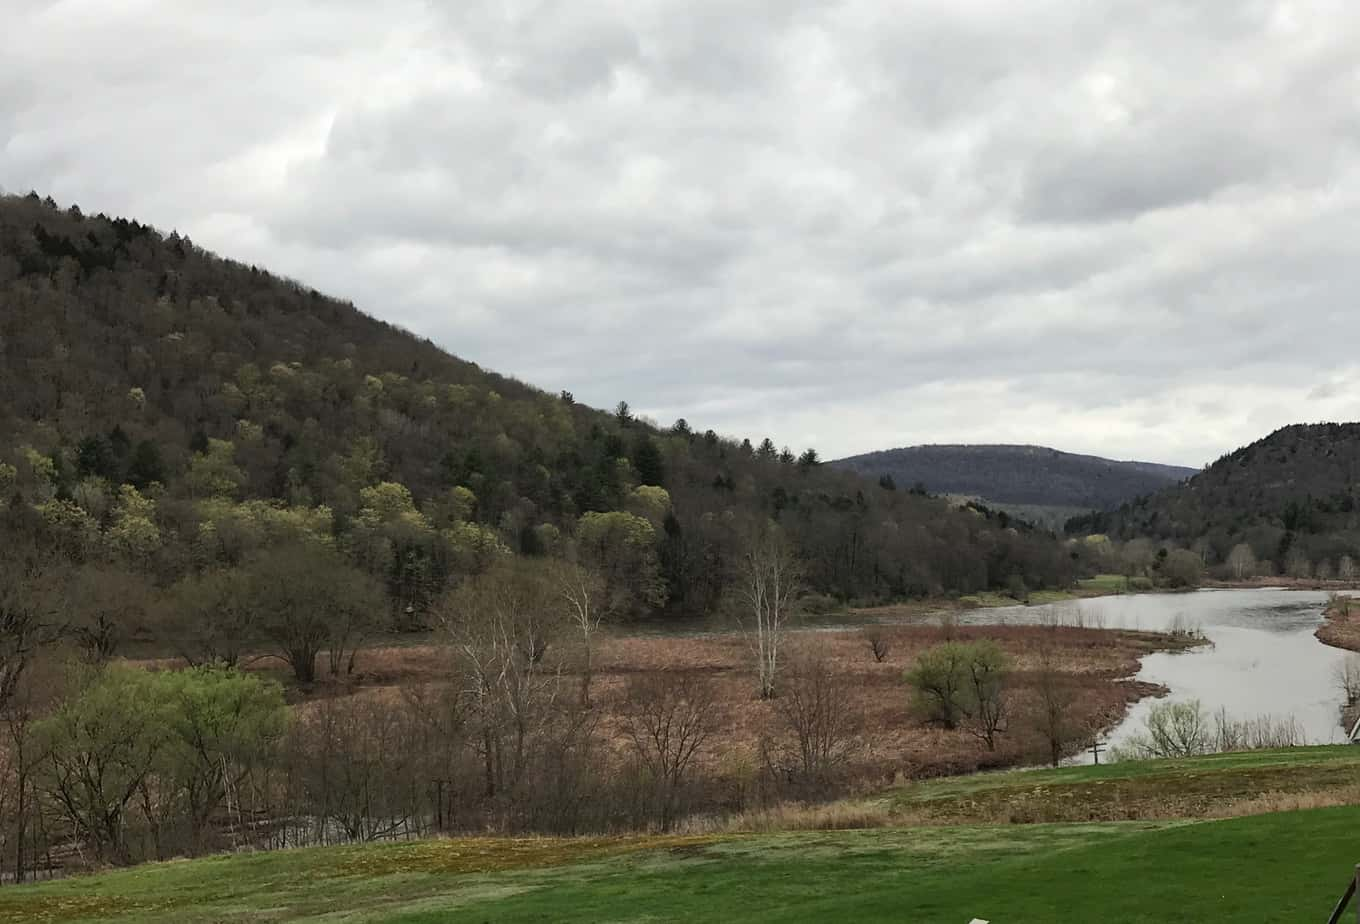 The Delaware River just south of Hancock, N.Y.,  PHOTO BY MEG MCGUIRE